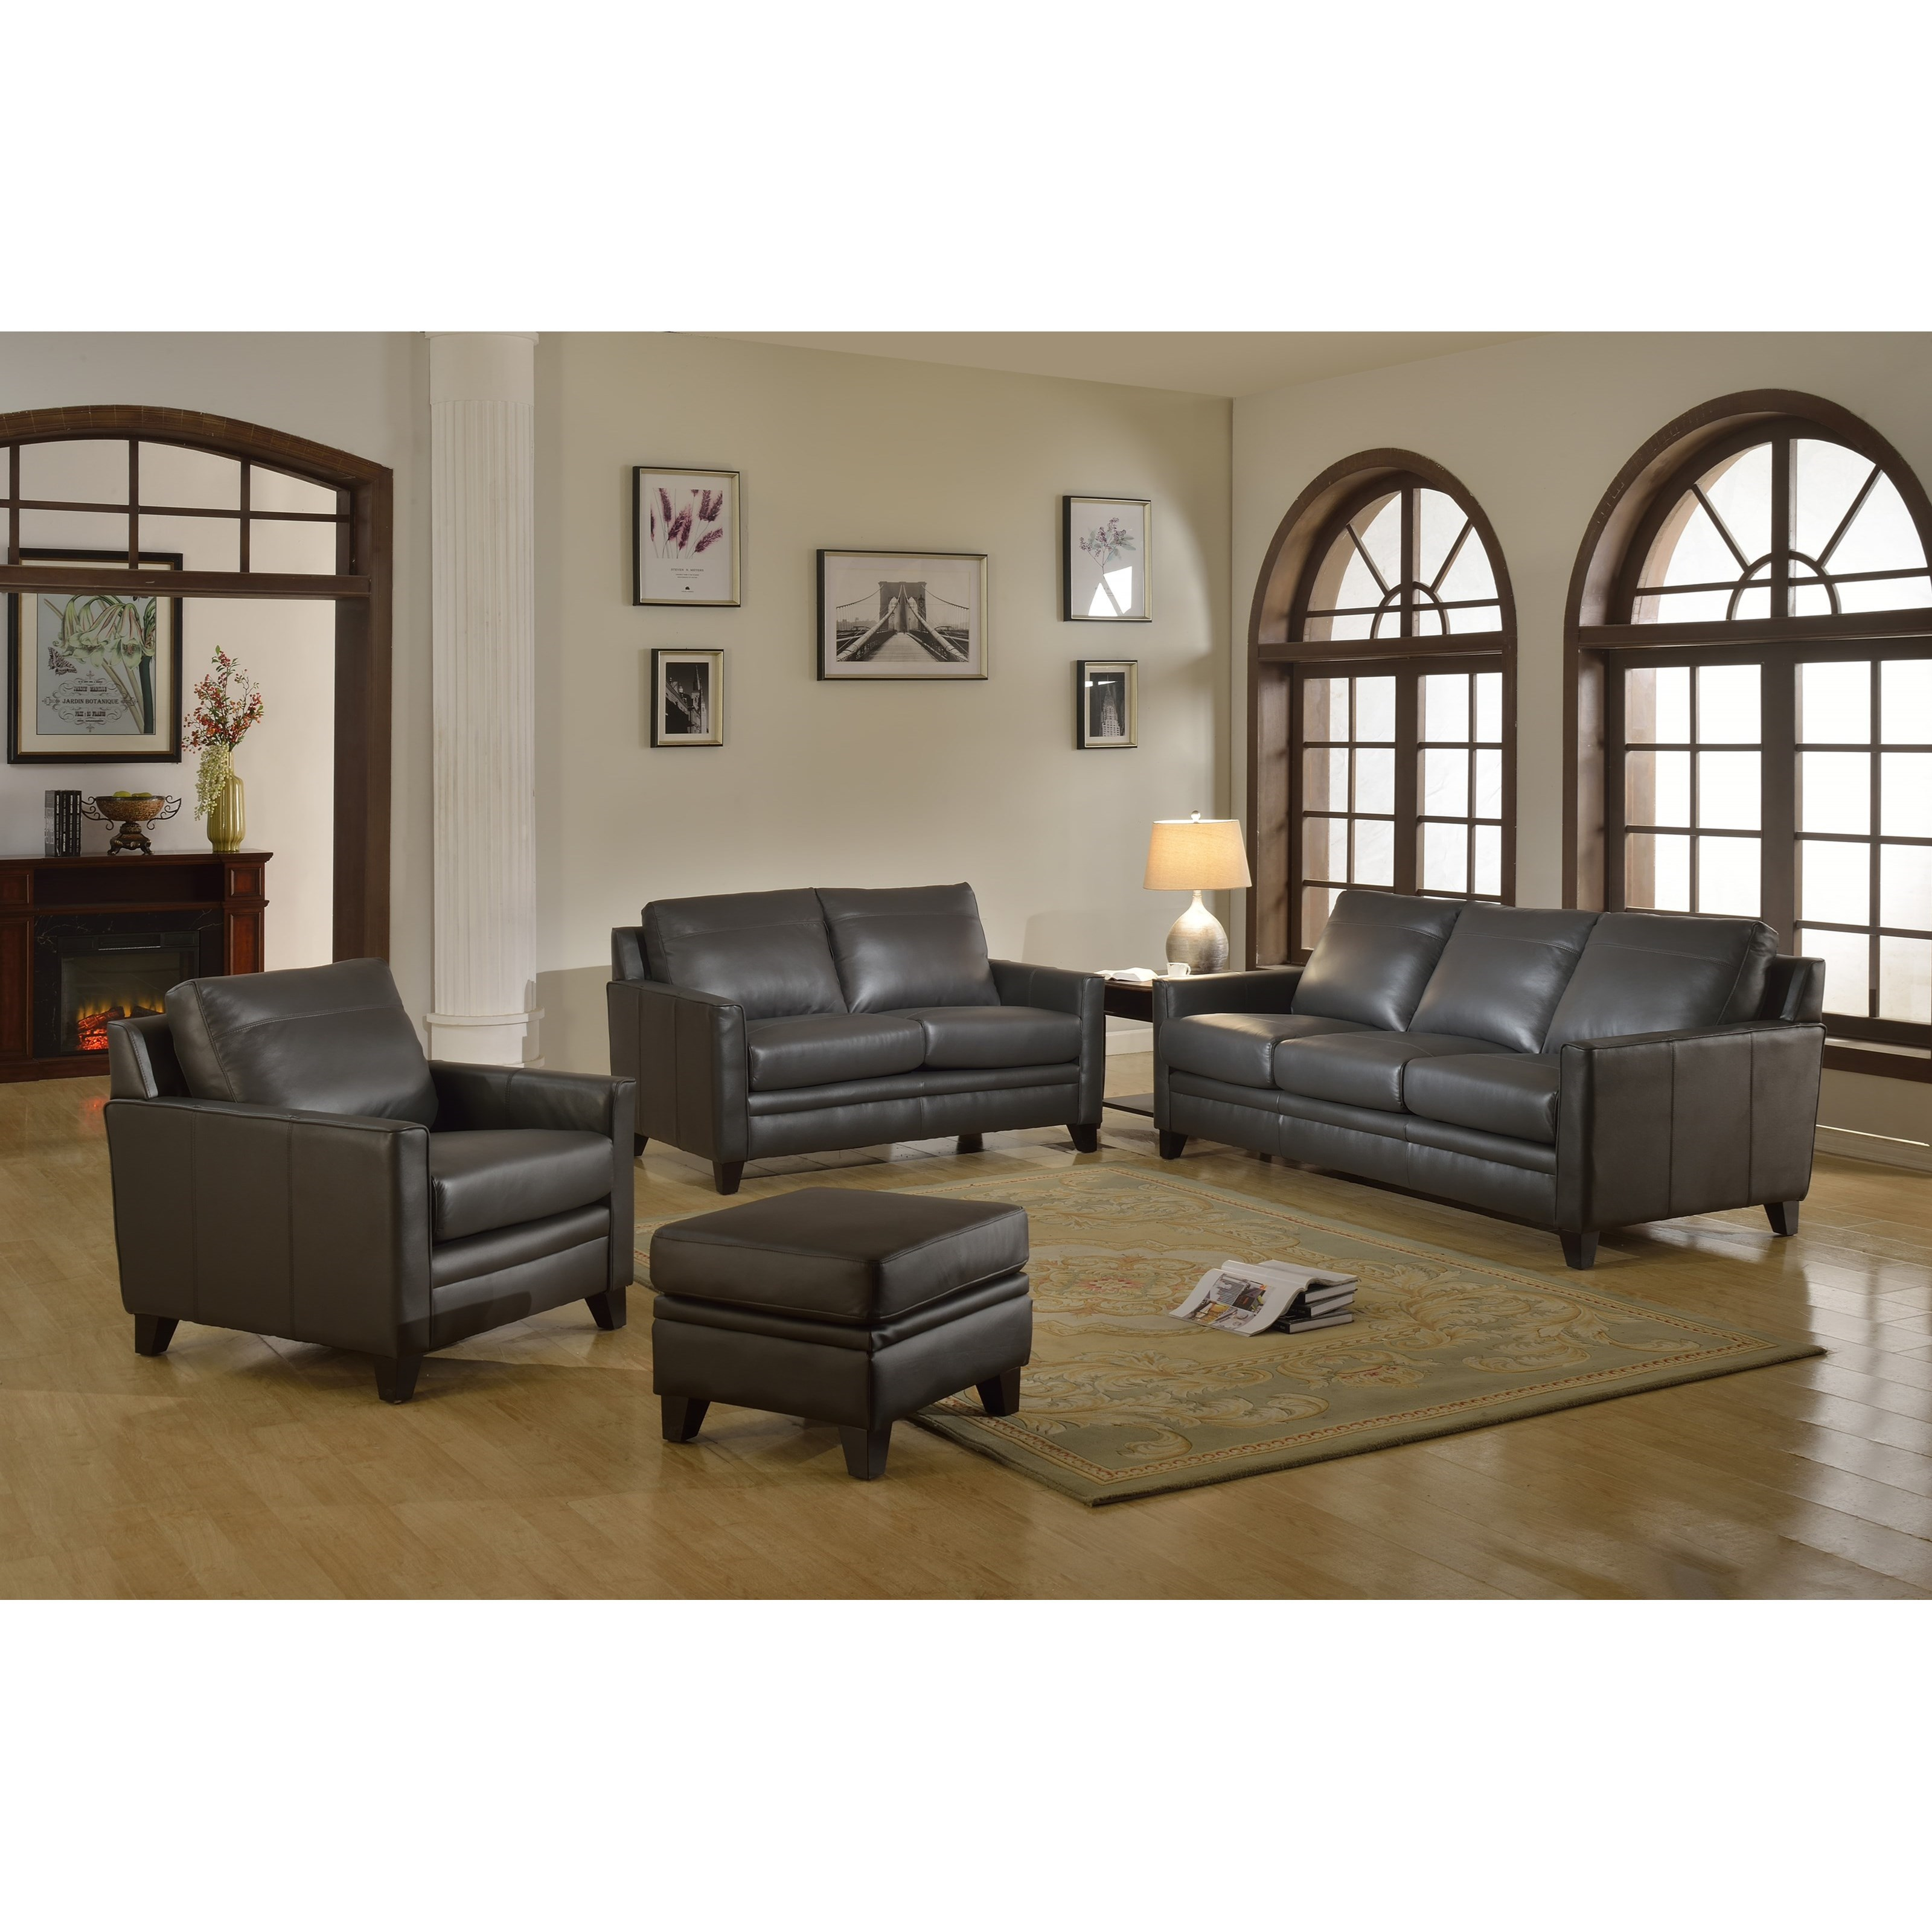 Fletcher Leather Living Room Group by Leather Italia USA at Home Furnishings Direct